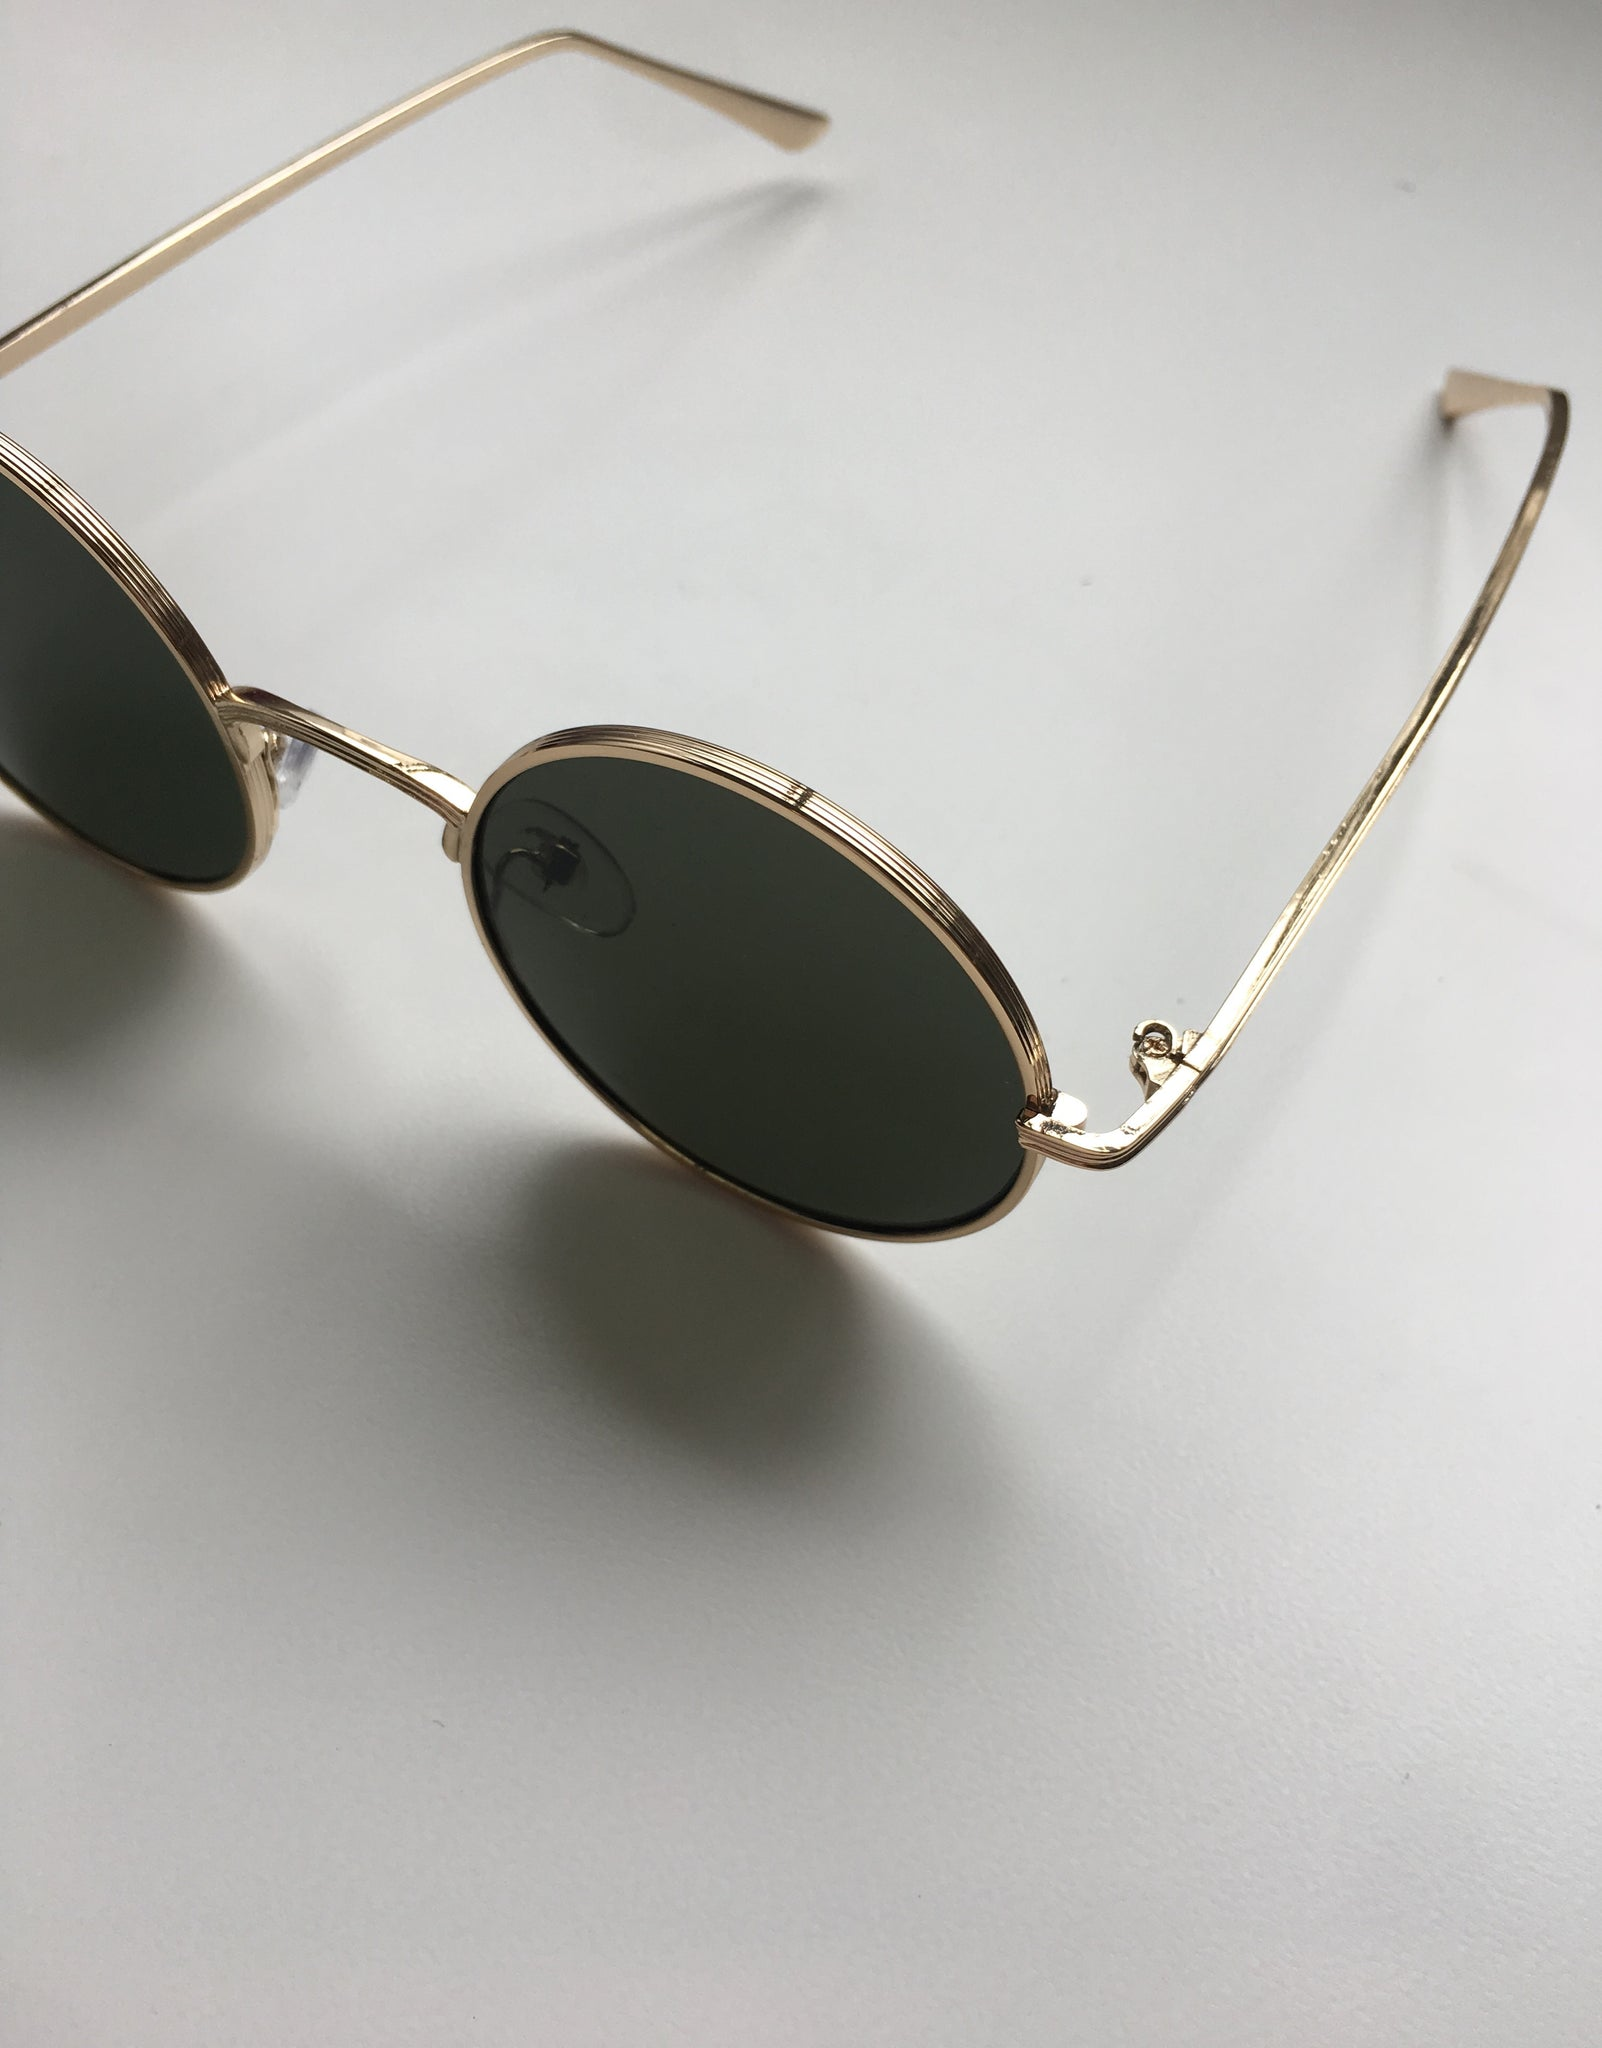 Retro Round Shape Sunglasses